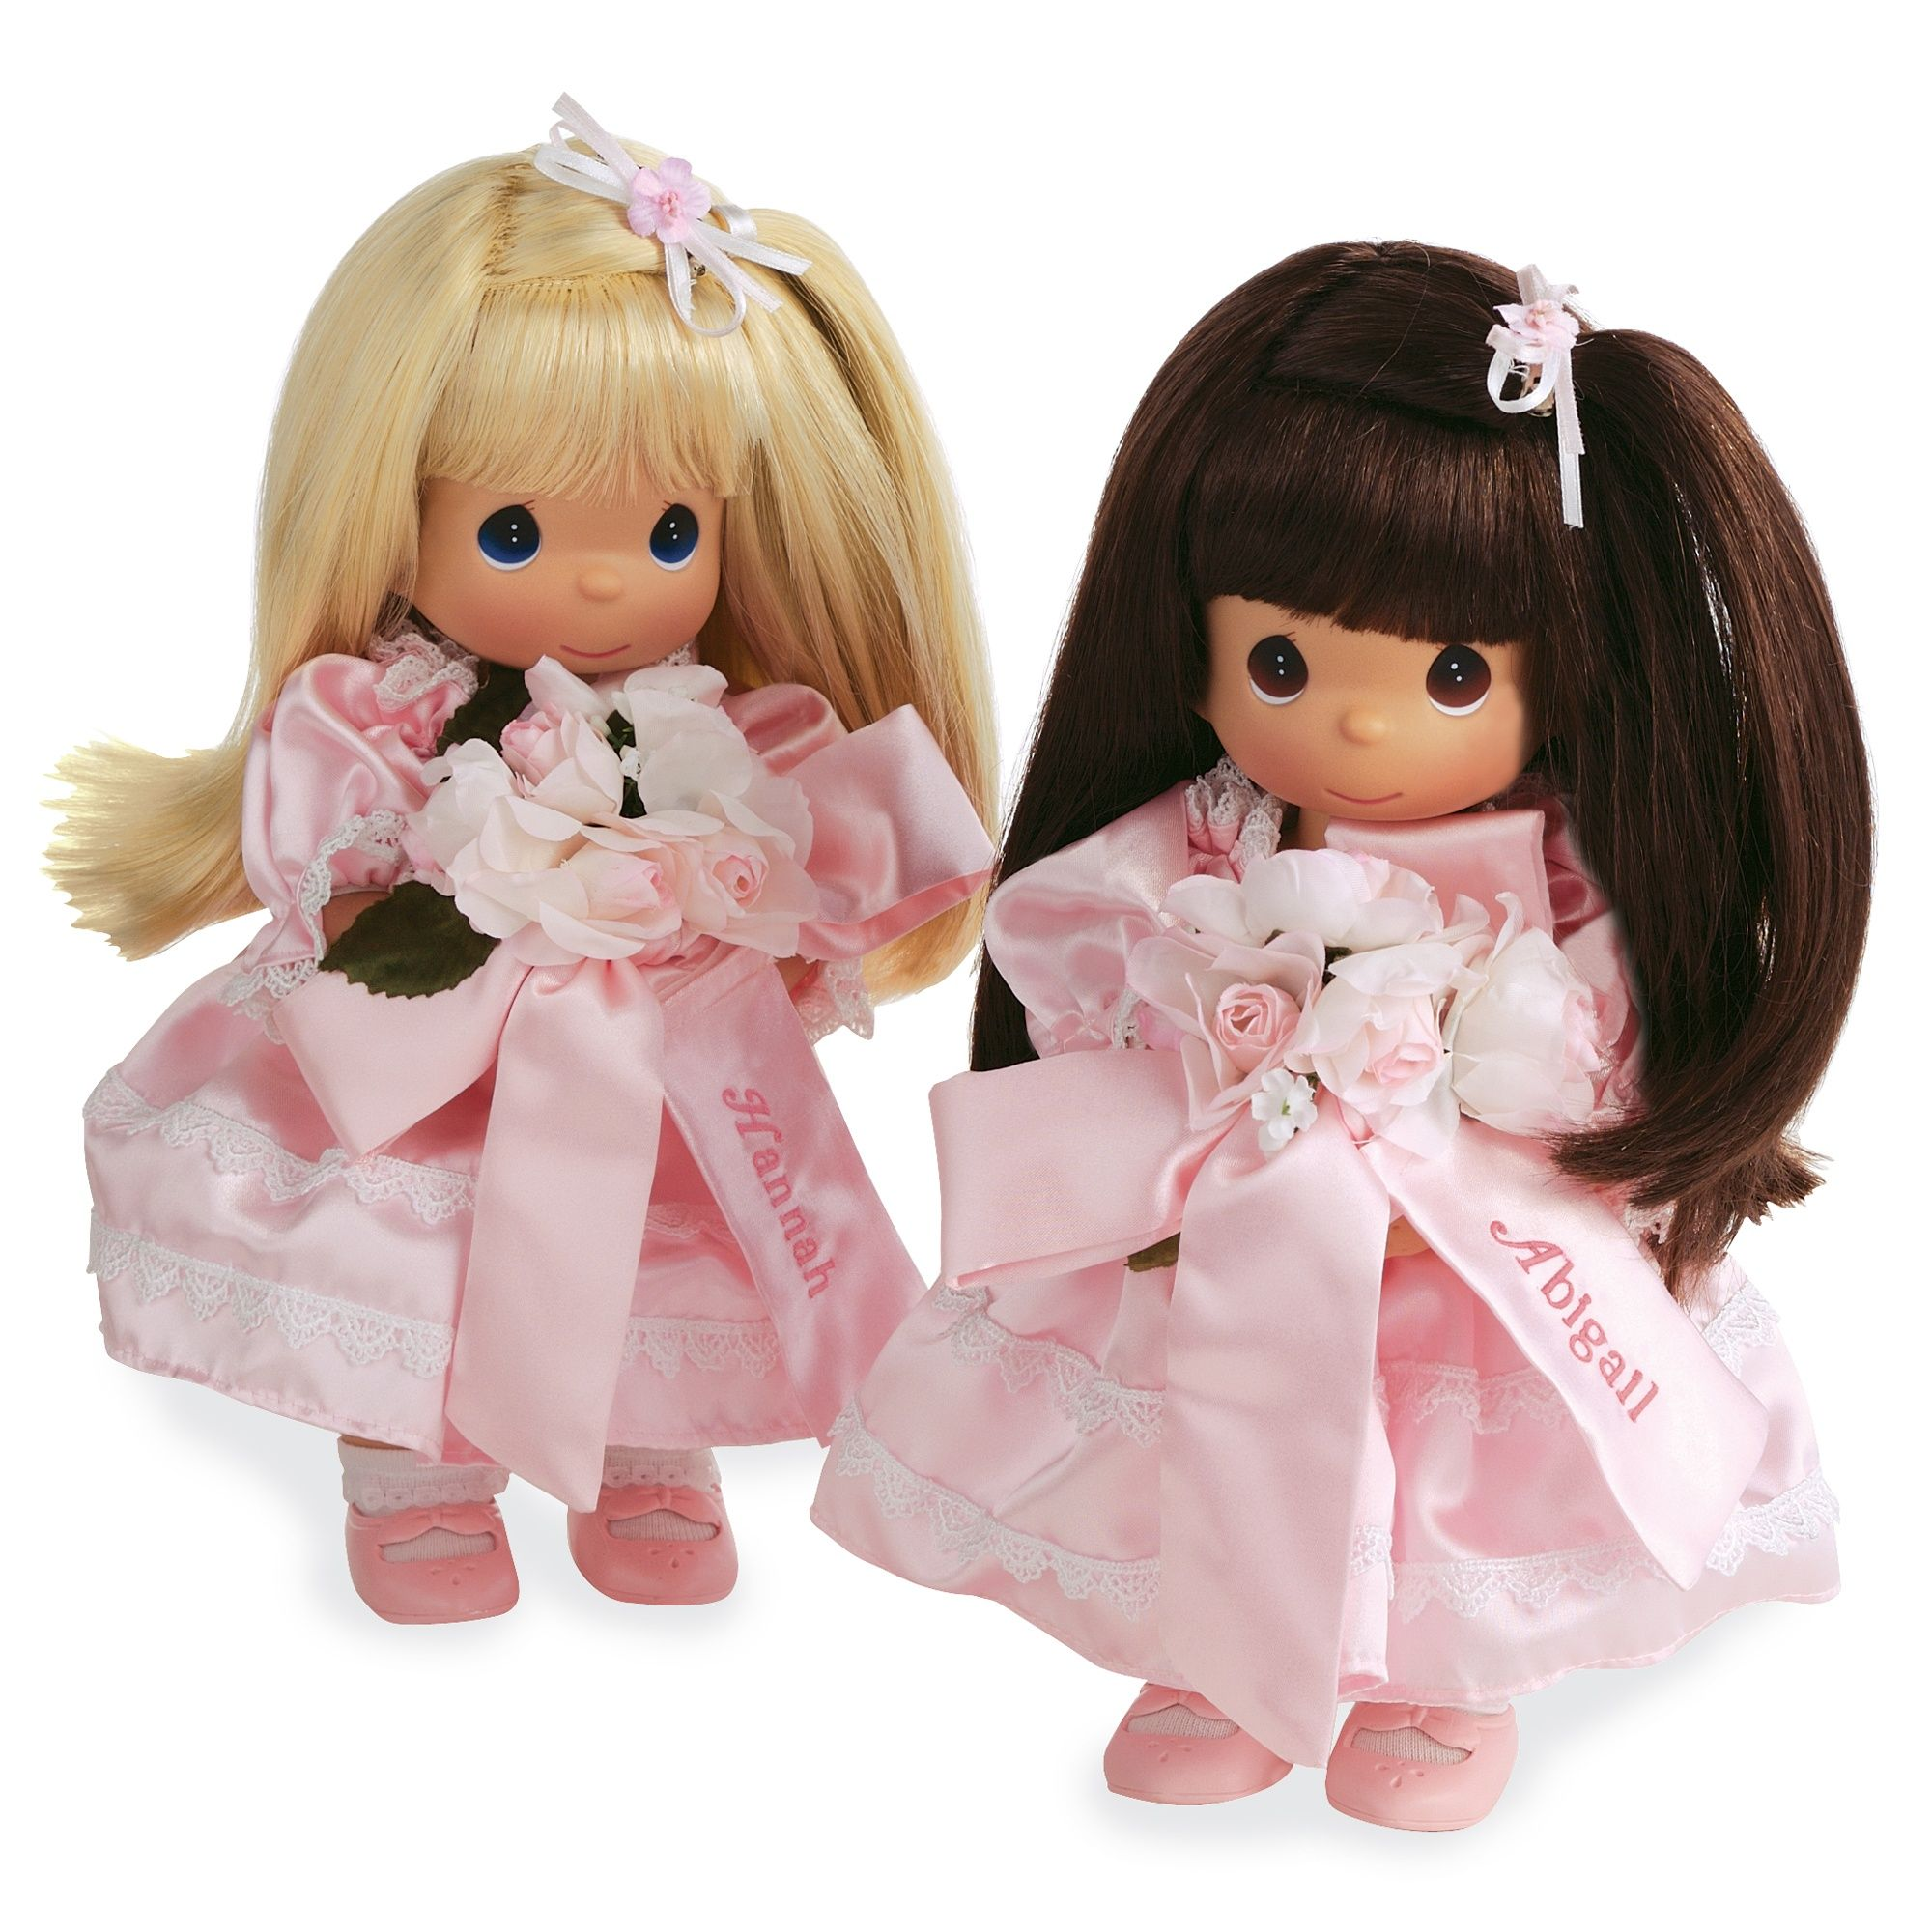 Precious Moments' Flower Girl Doll exclusivelyweddings